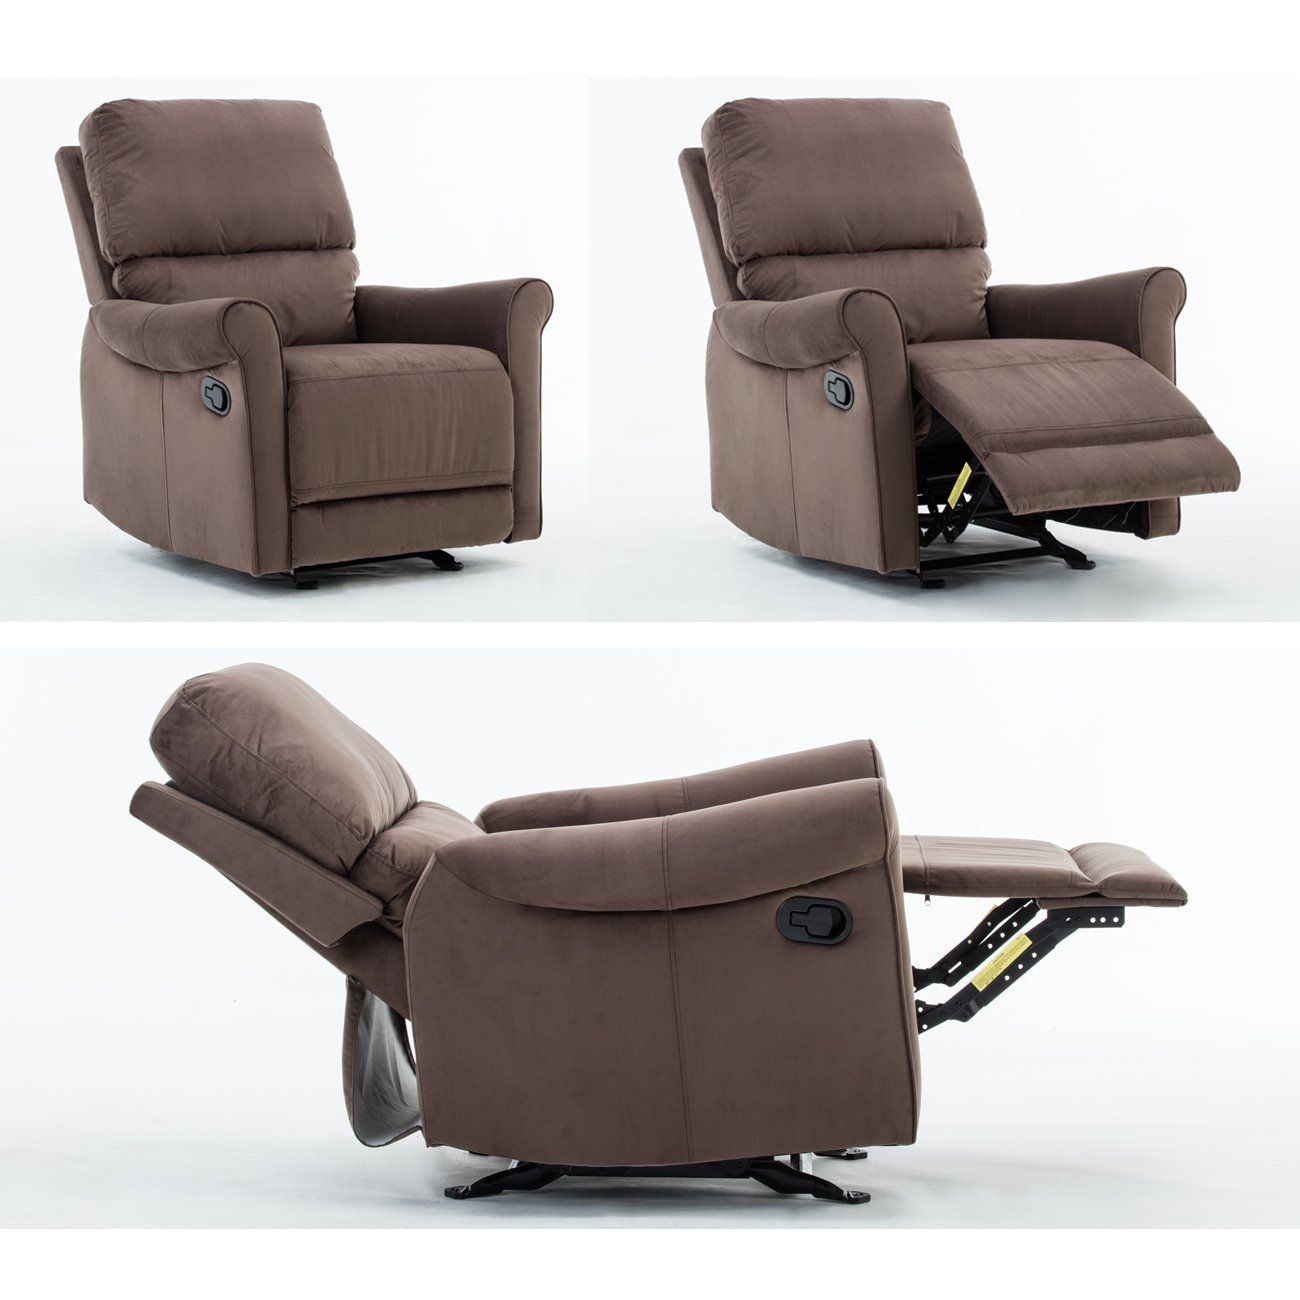 7 Best Recliners For Tall Man Reviewed In Detail Jun 2020 Recliner Tall Guys Electric Recliners